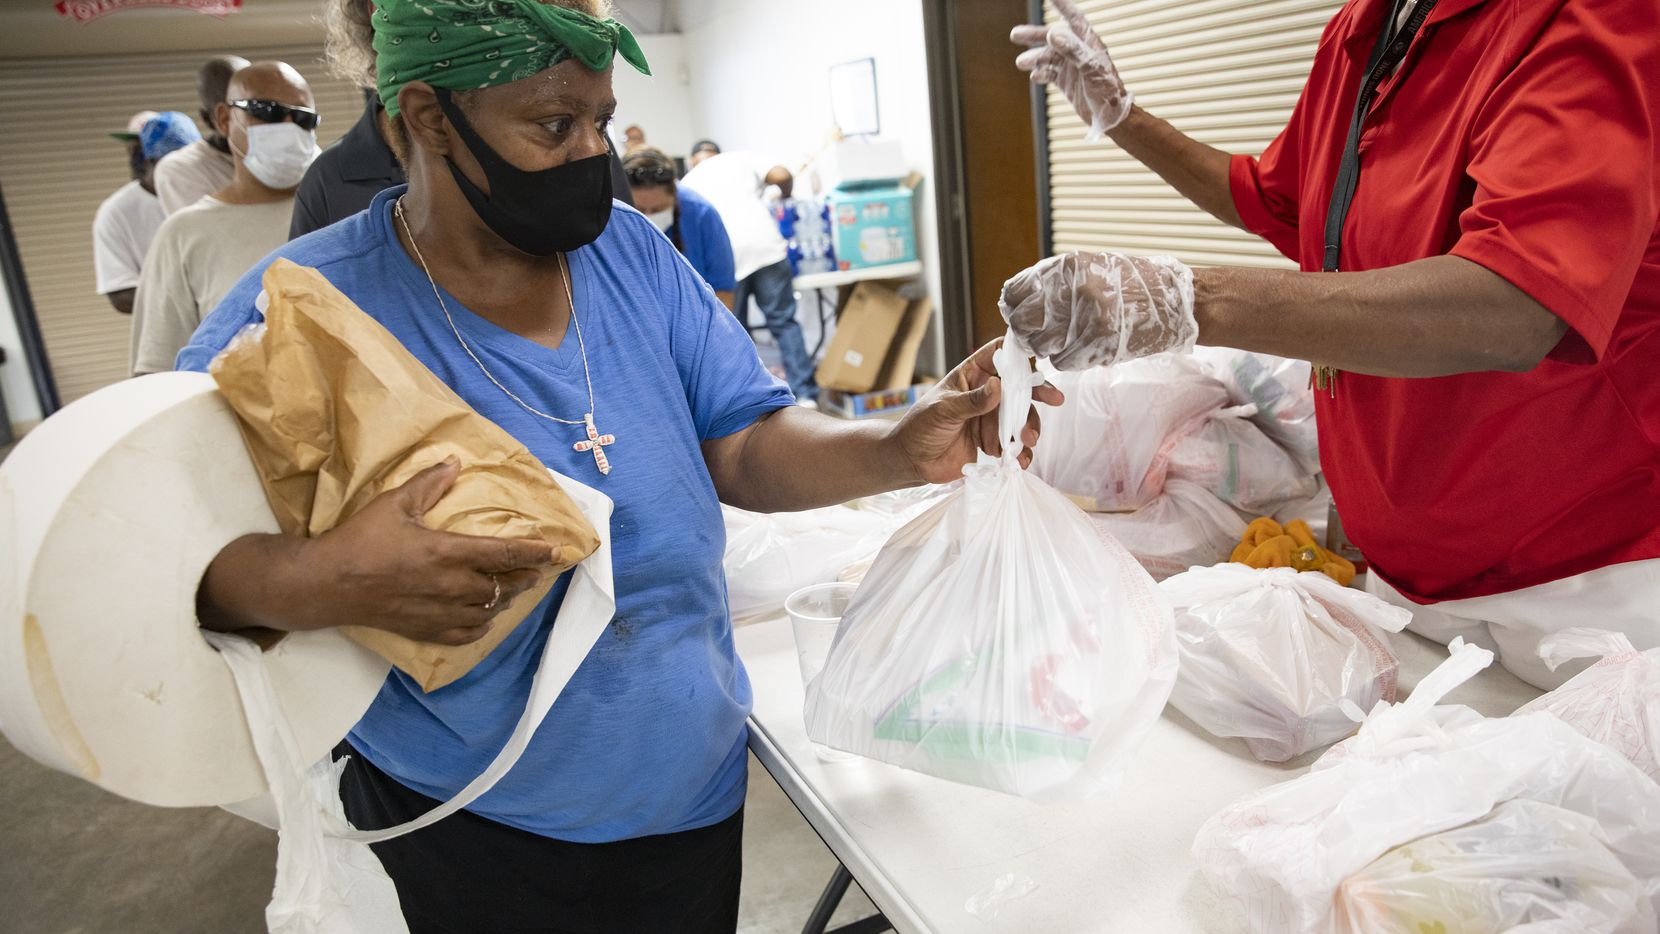 Tammy Ardmon (left) received a meal at Cornerstone Community Development Corp. in Dallas on Saturday.